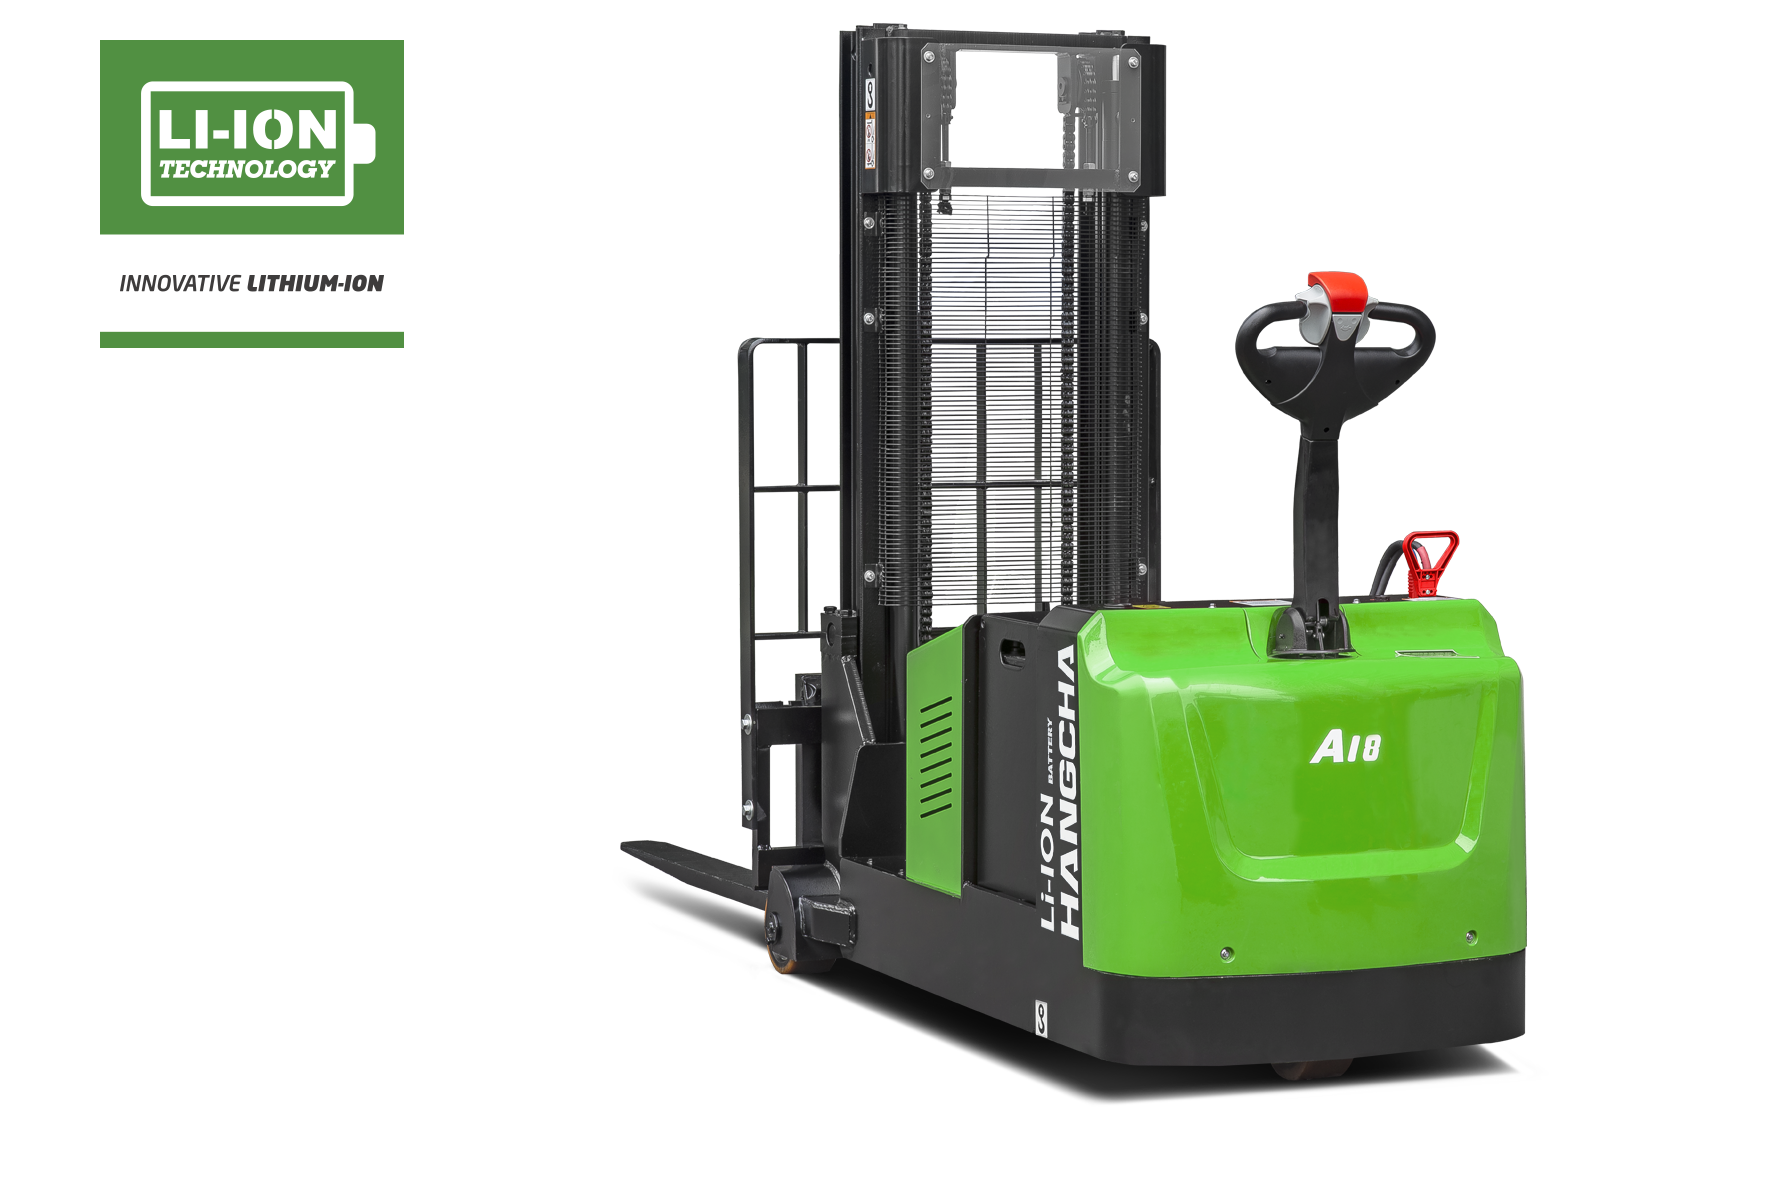 Electric Lithium-ion Industrial Walkie Counterbalanced Stacker 2,000-4,000lb